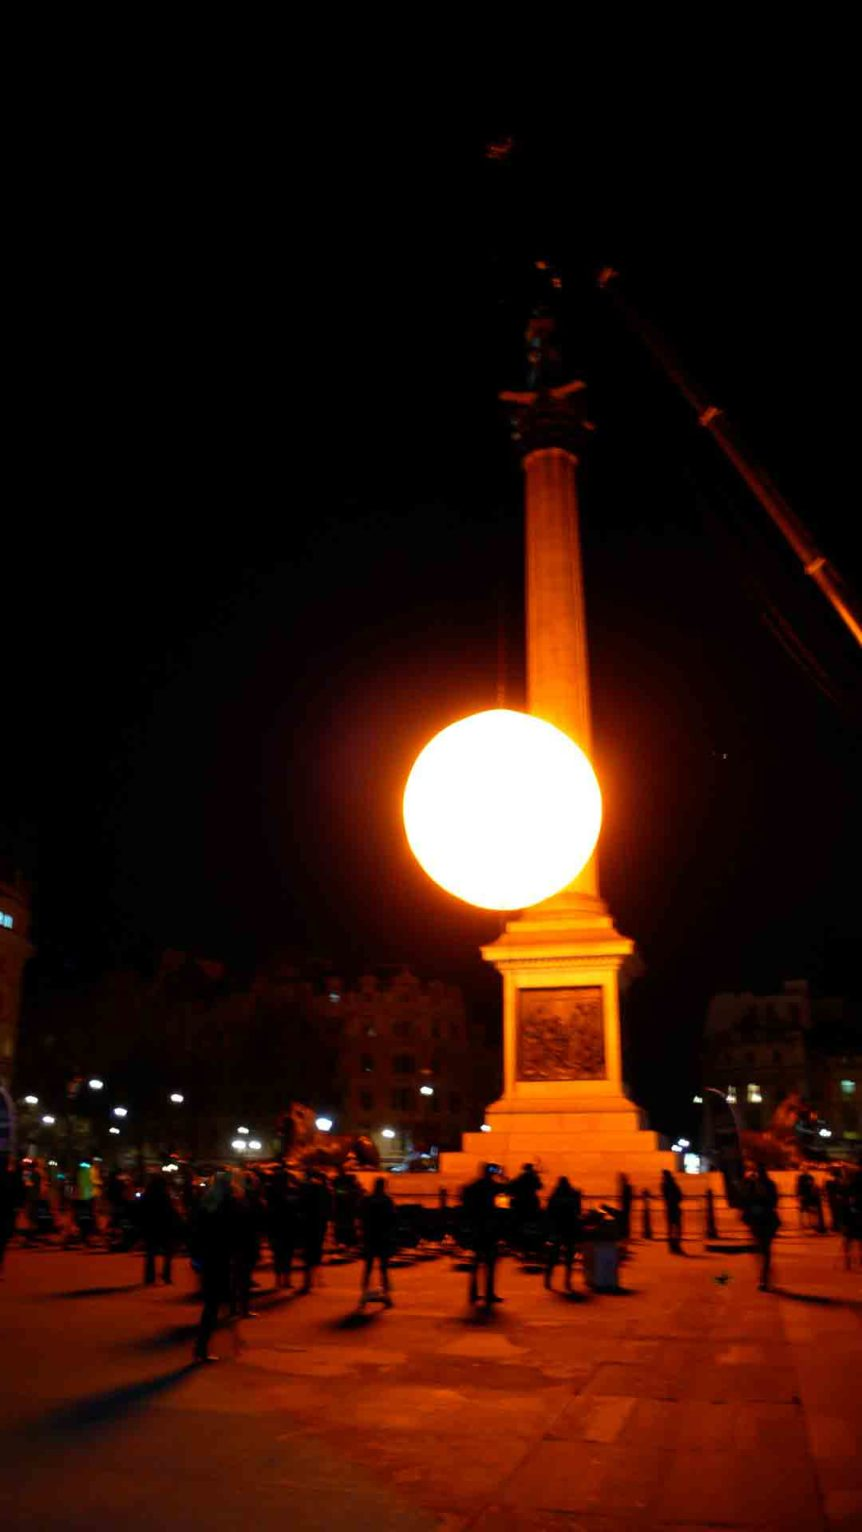 People watching inflatable sun in the dark at Trafalgar Square